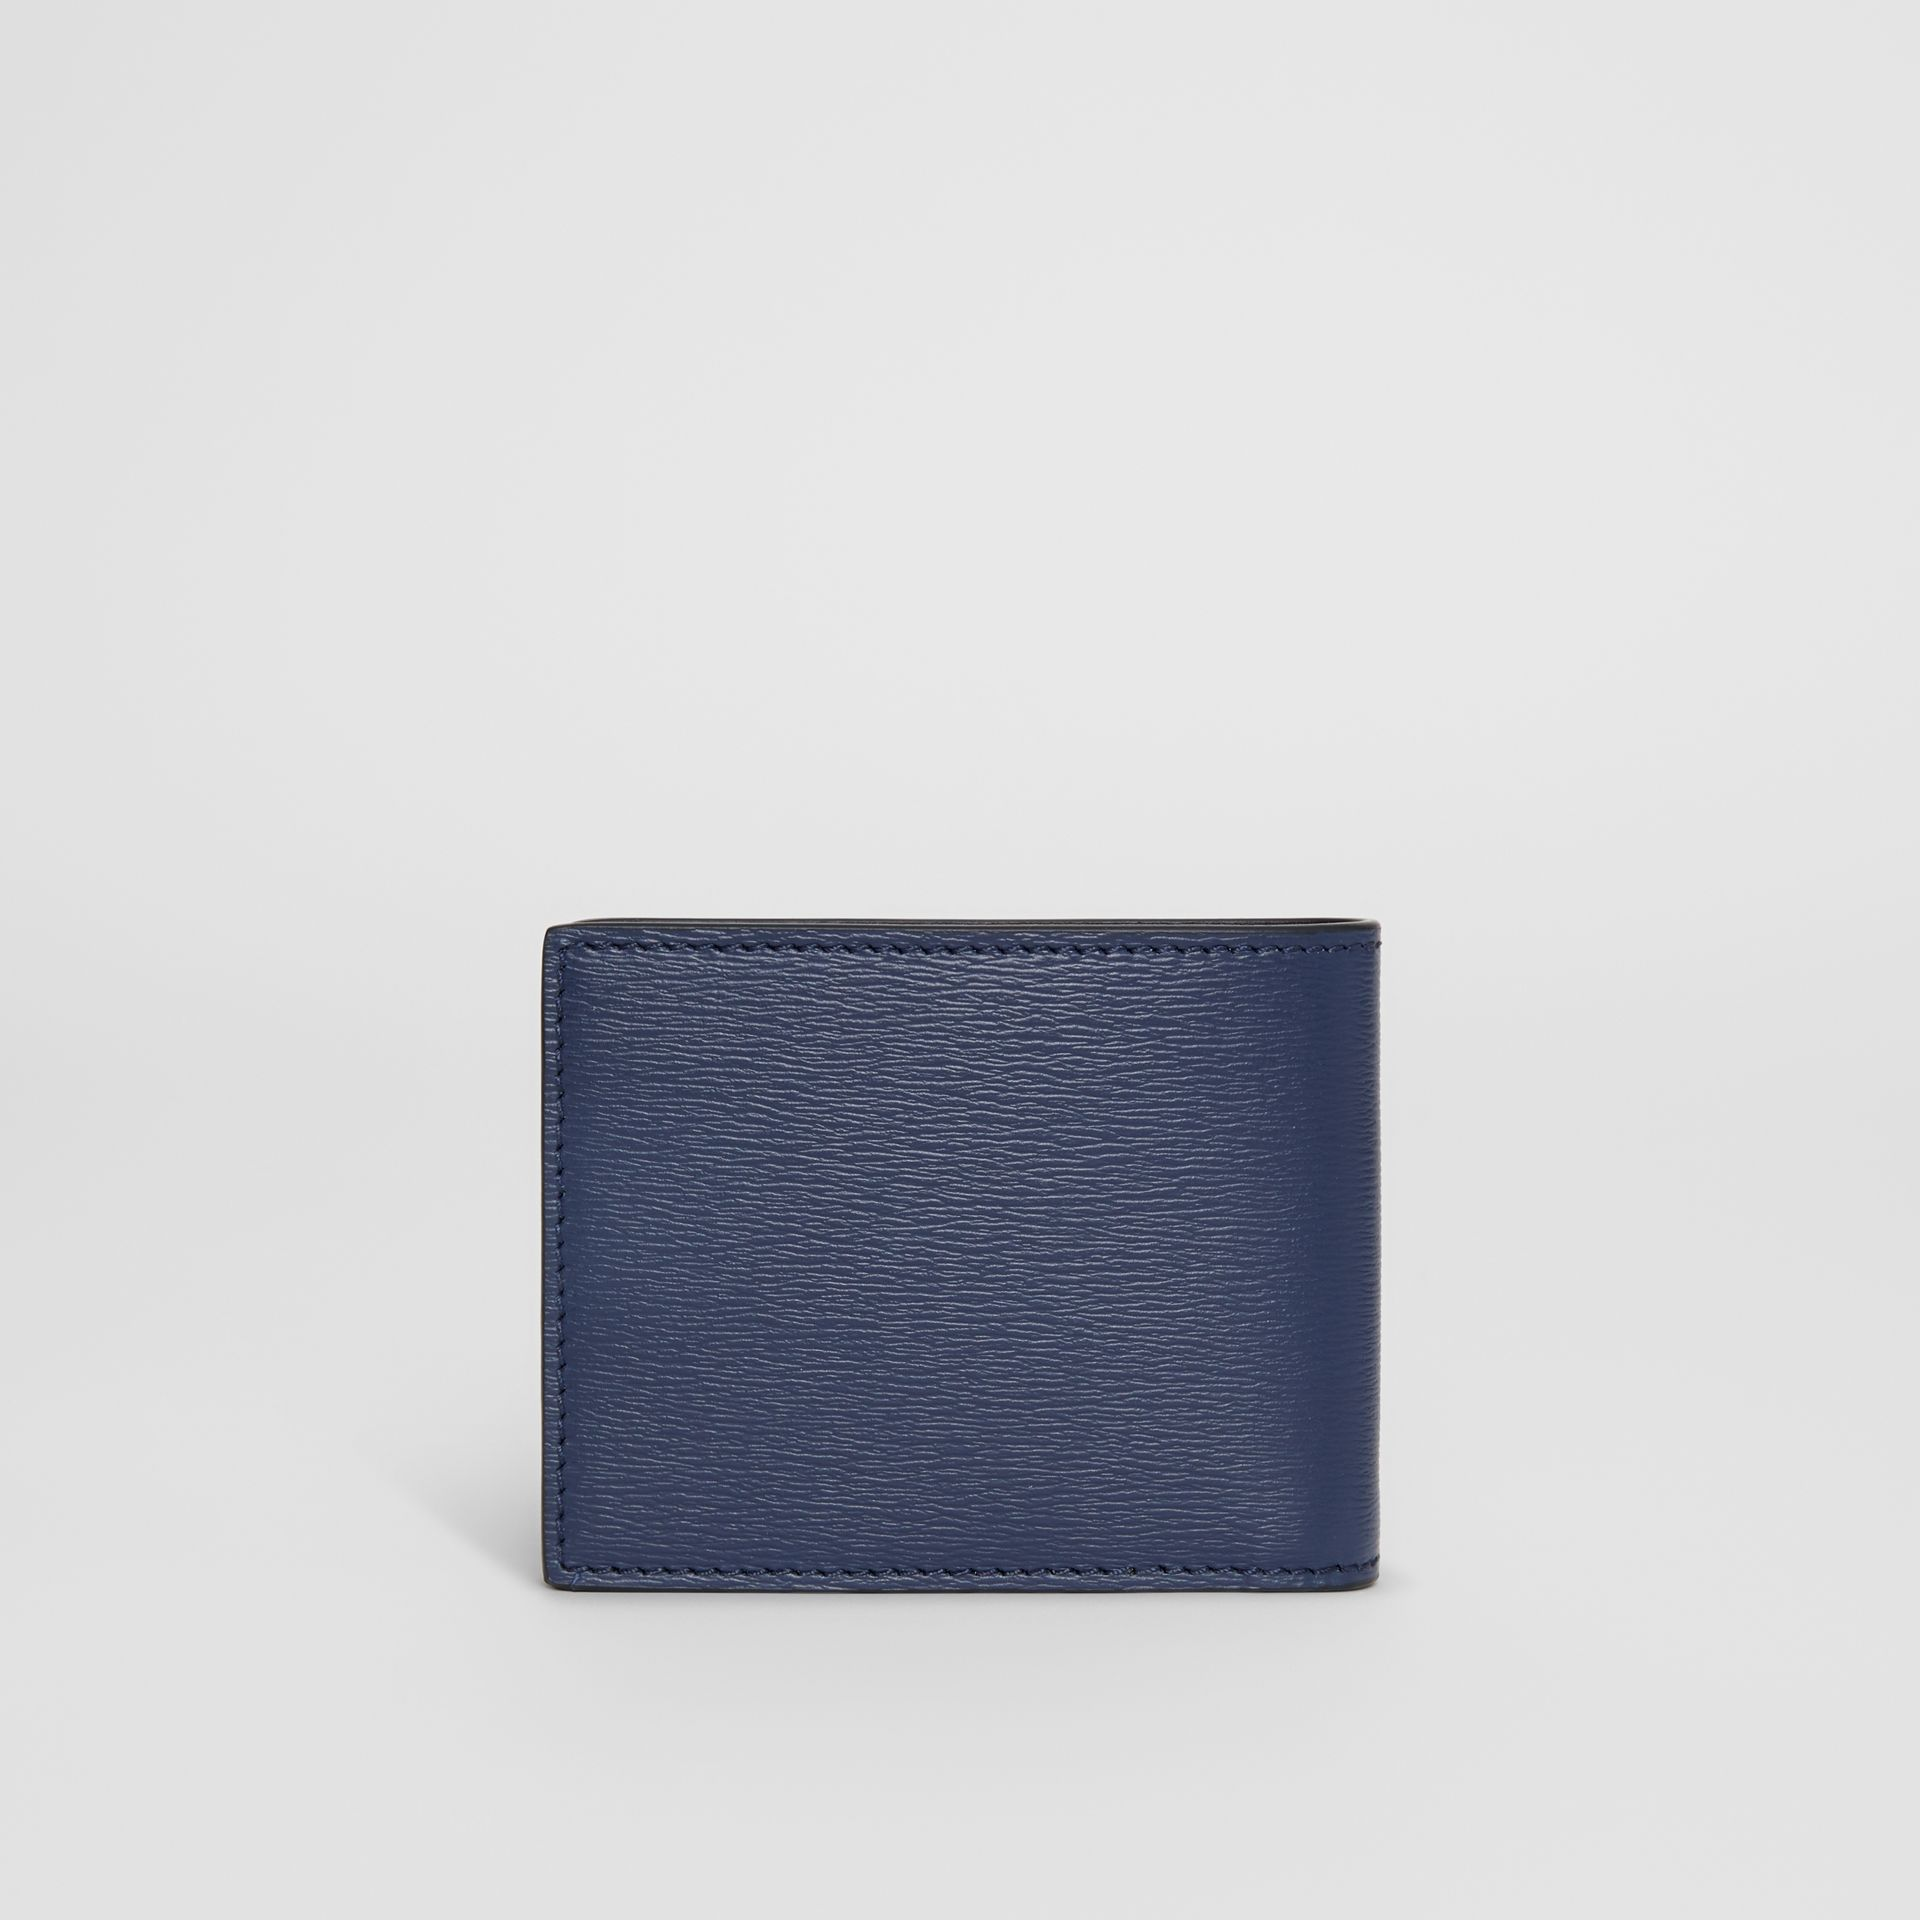 London Leather Bifold Wallet in Navy - Men | Burberry - gallery image 4